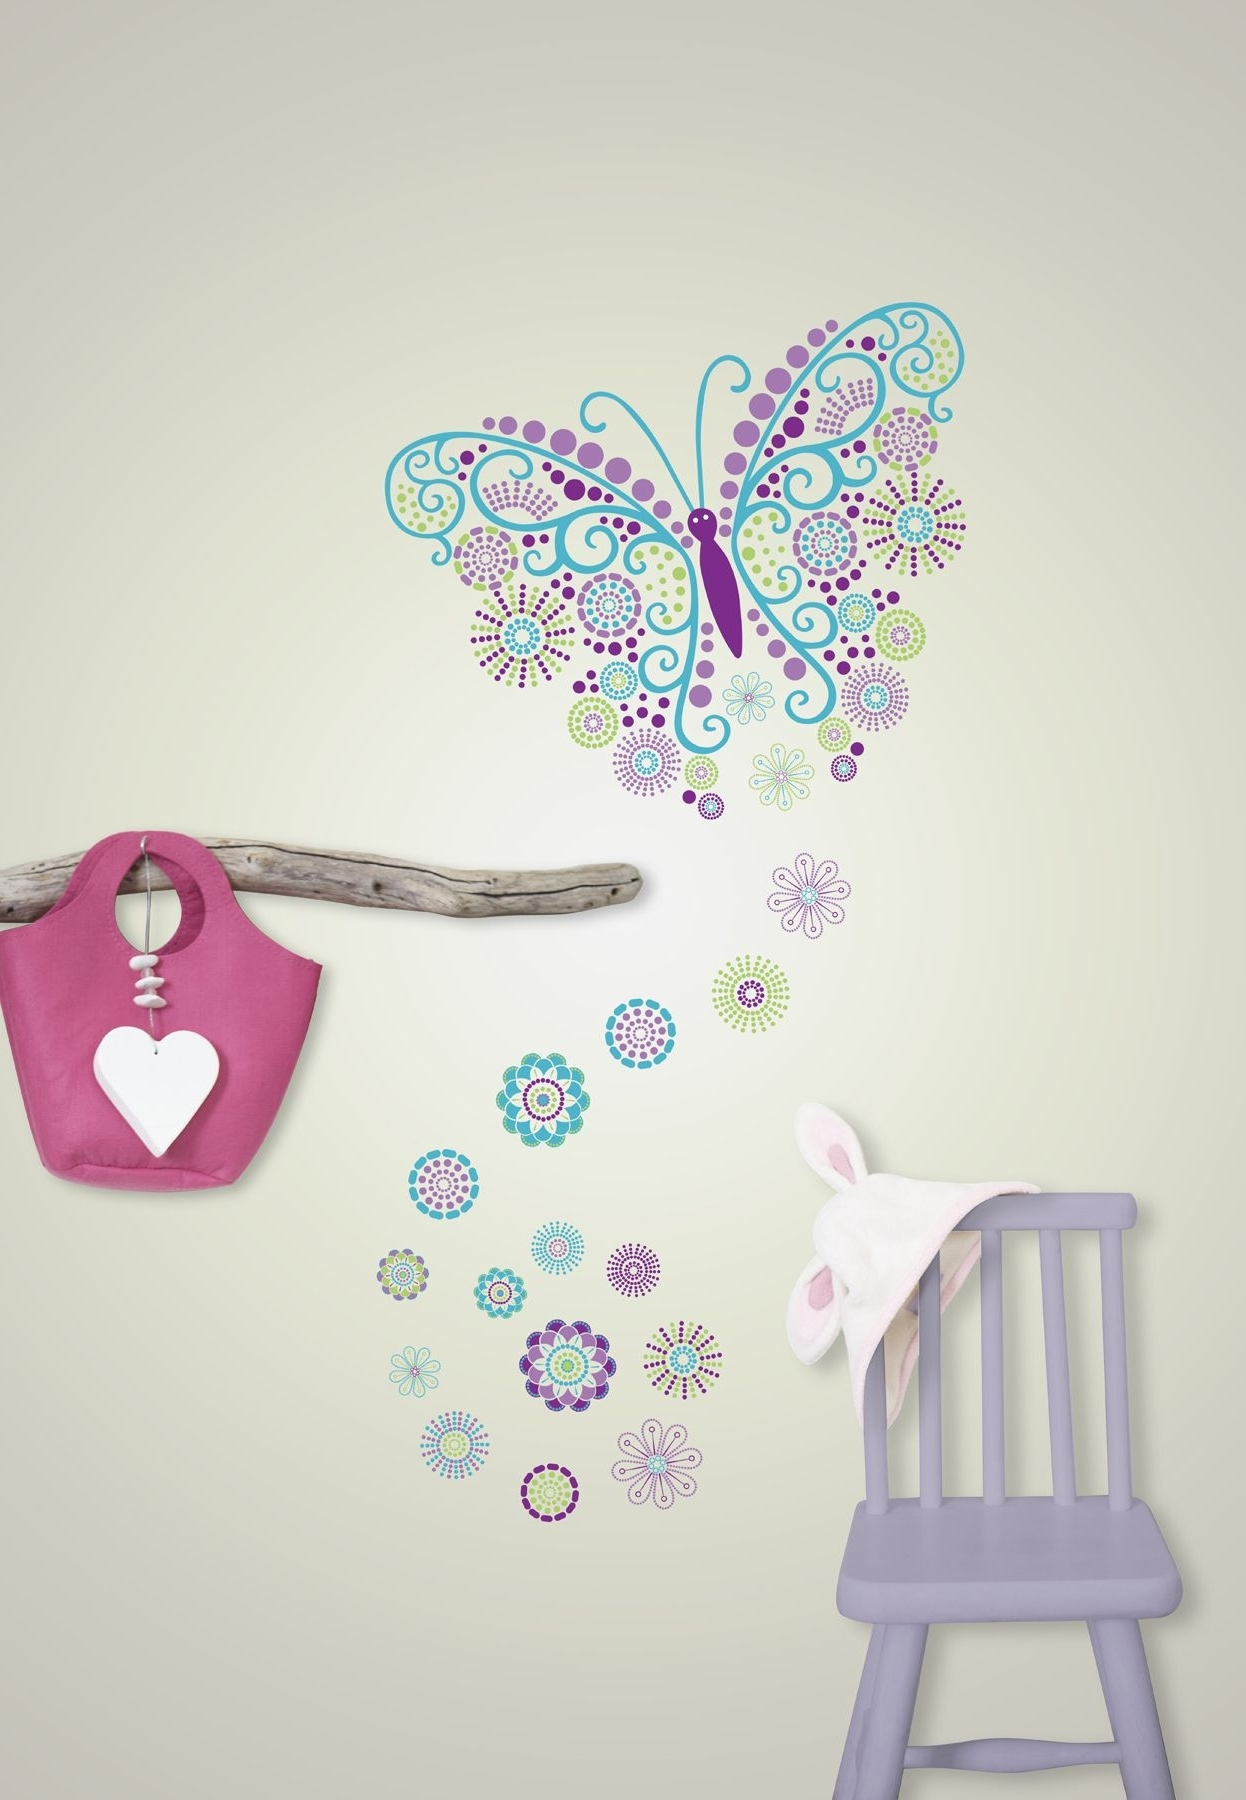 Gorgeous Butterfly Wall Art Sticker Kit In Widely Used Butterfly Wall Art (View 10 of 15)